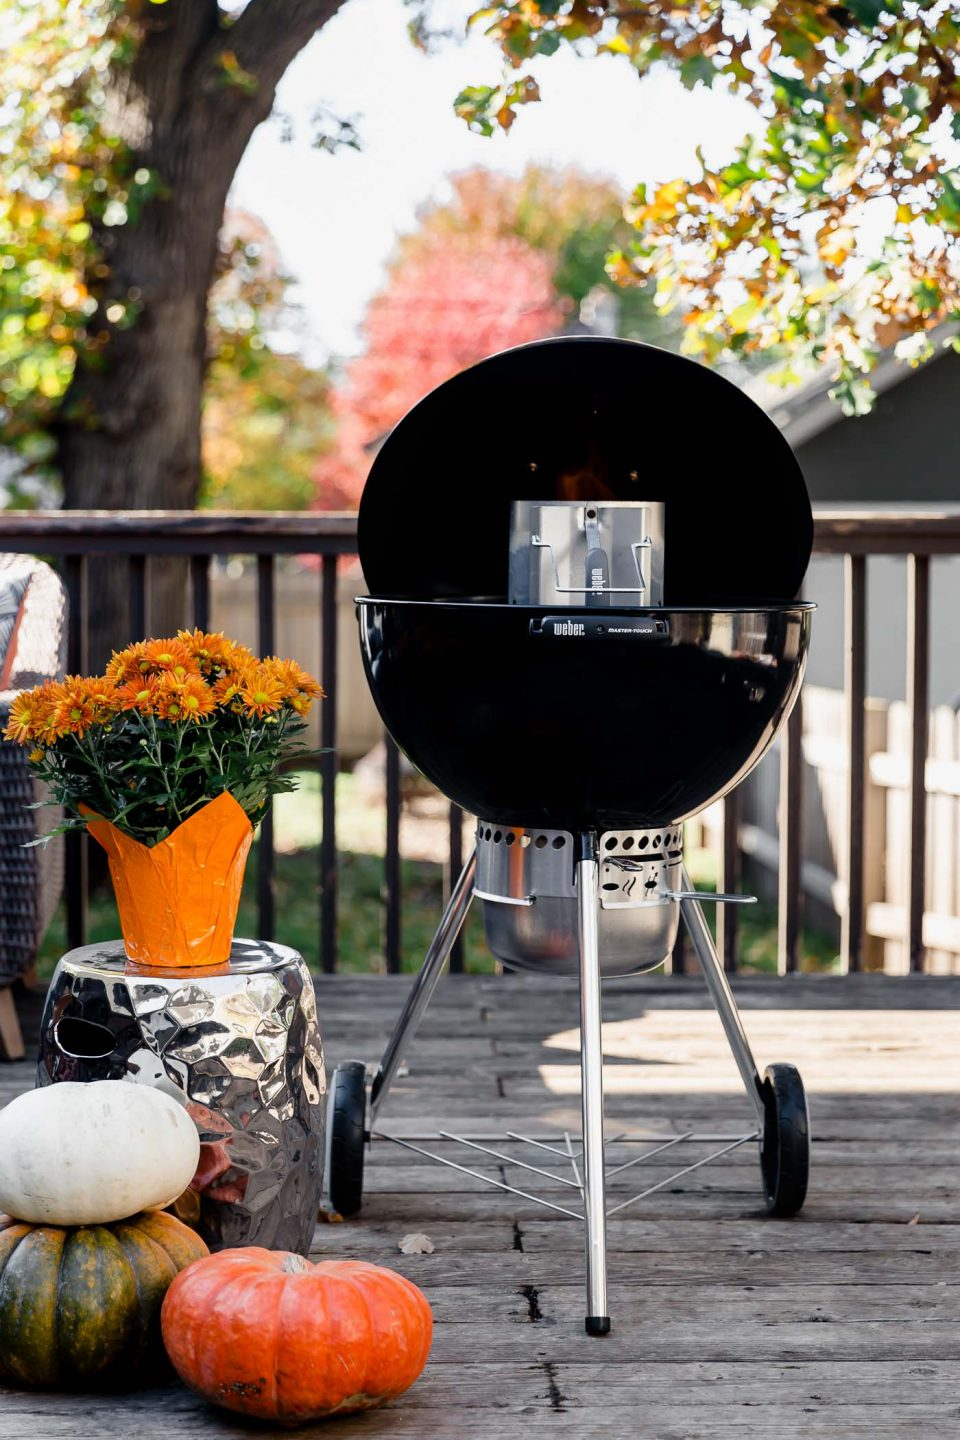 Weber 22-inch Kettle Grill from The Home Depot. Grill is open, with a charcoal chimney inside. The grill is on a deck, surrounded by orange mums & pumpkins. There is a tree in the backyard with orange and green leaves.